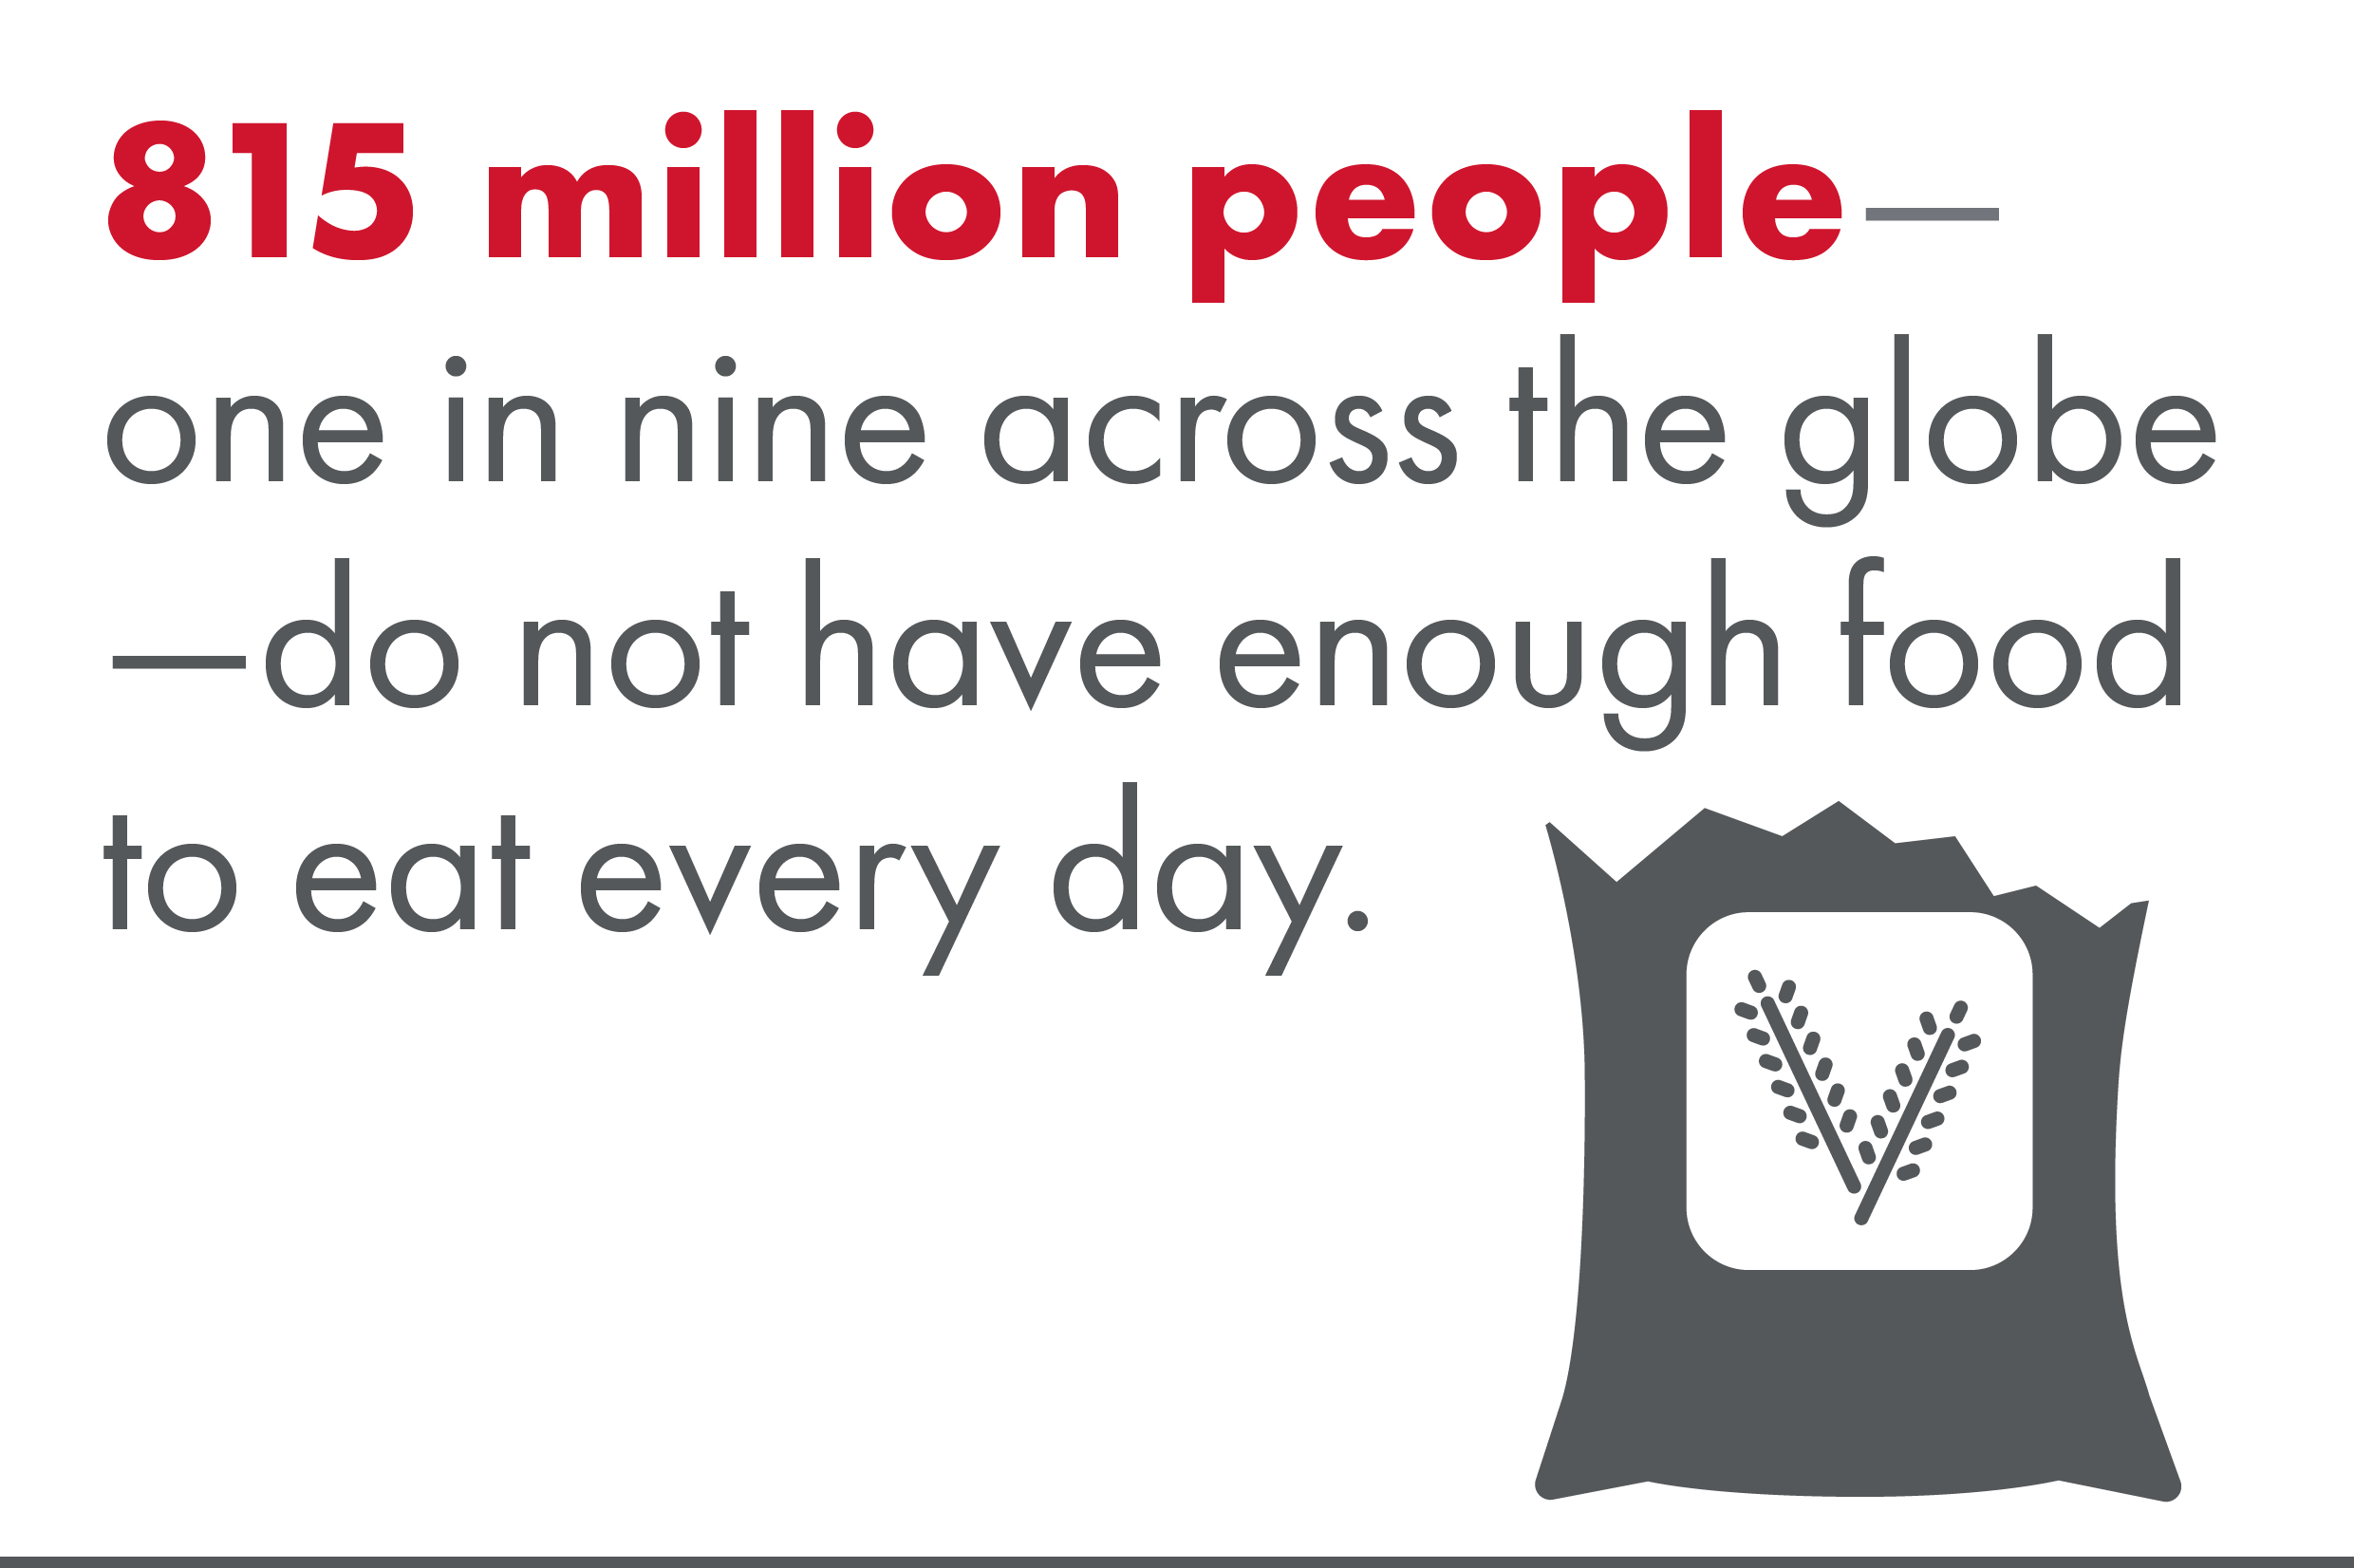 815 million people - one in nine across the globe - do not have enough food to eat every day.